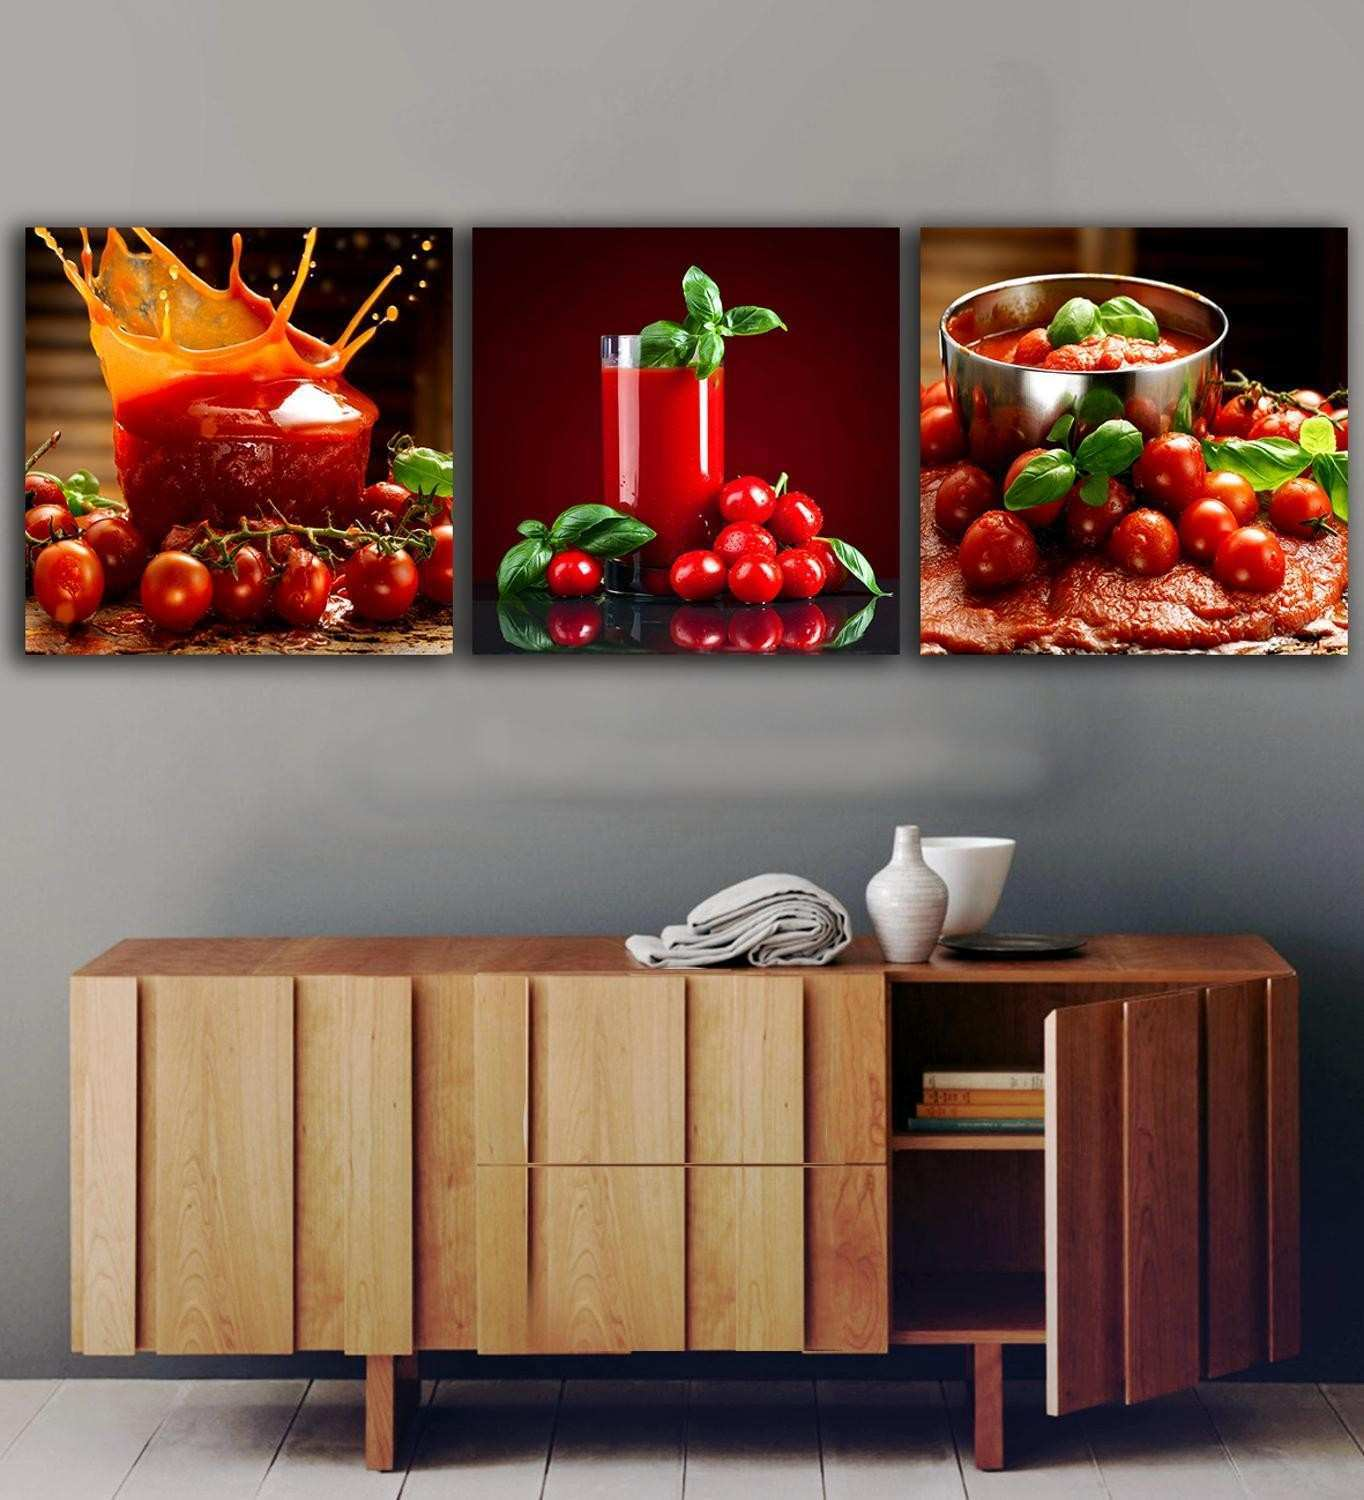 3 Panels Tomatoes Juice paintings for the kitchen fruit wall decor